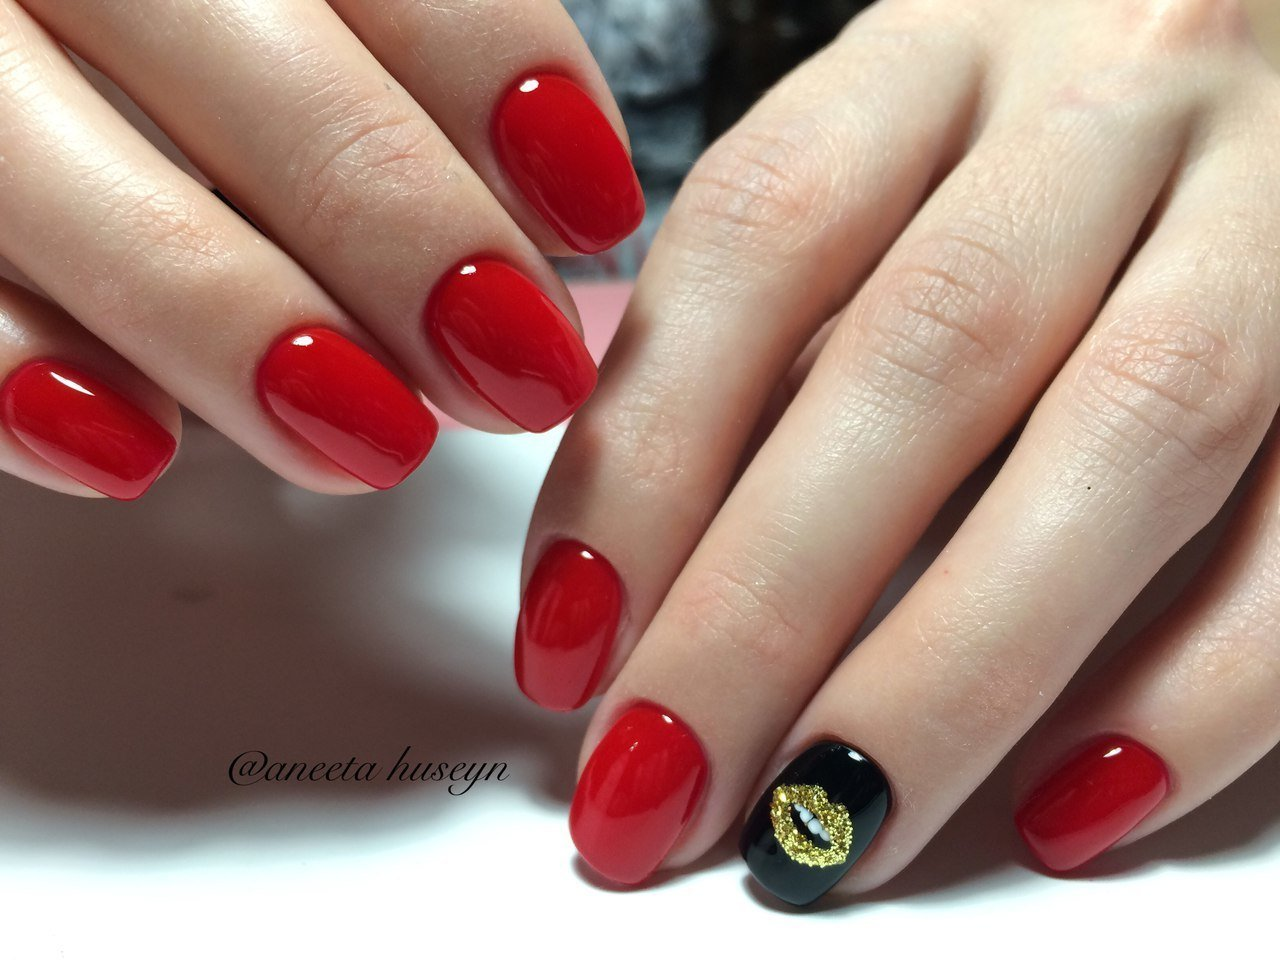 Red dress nails